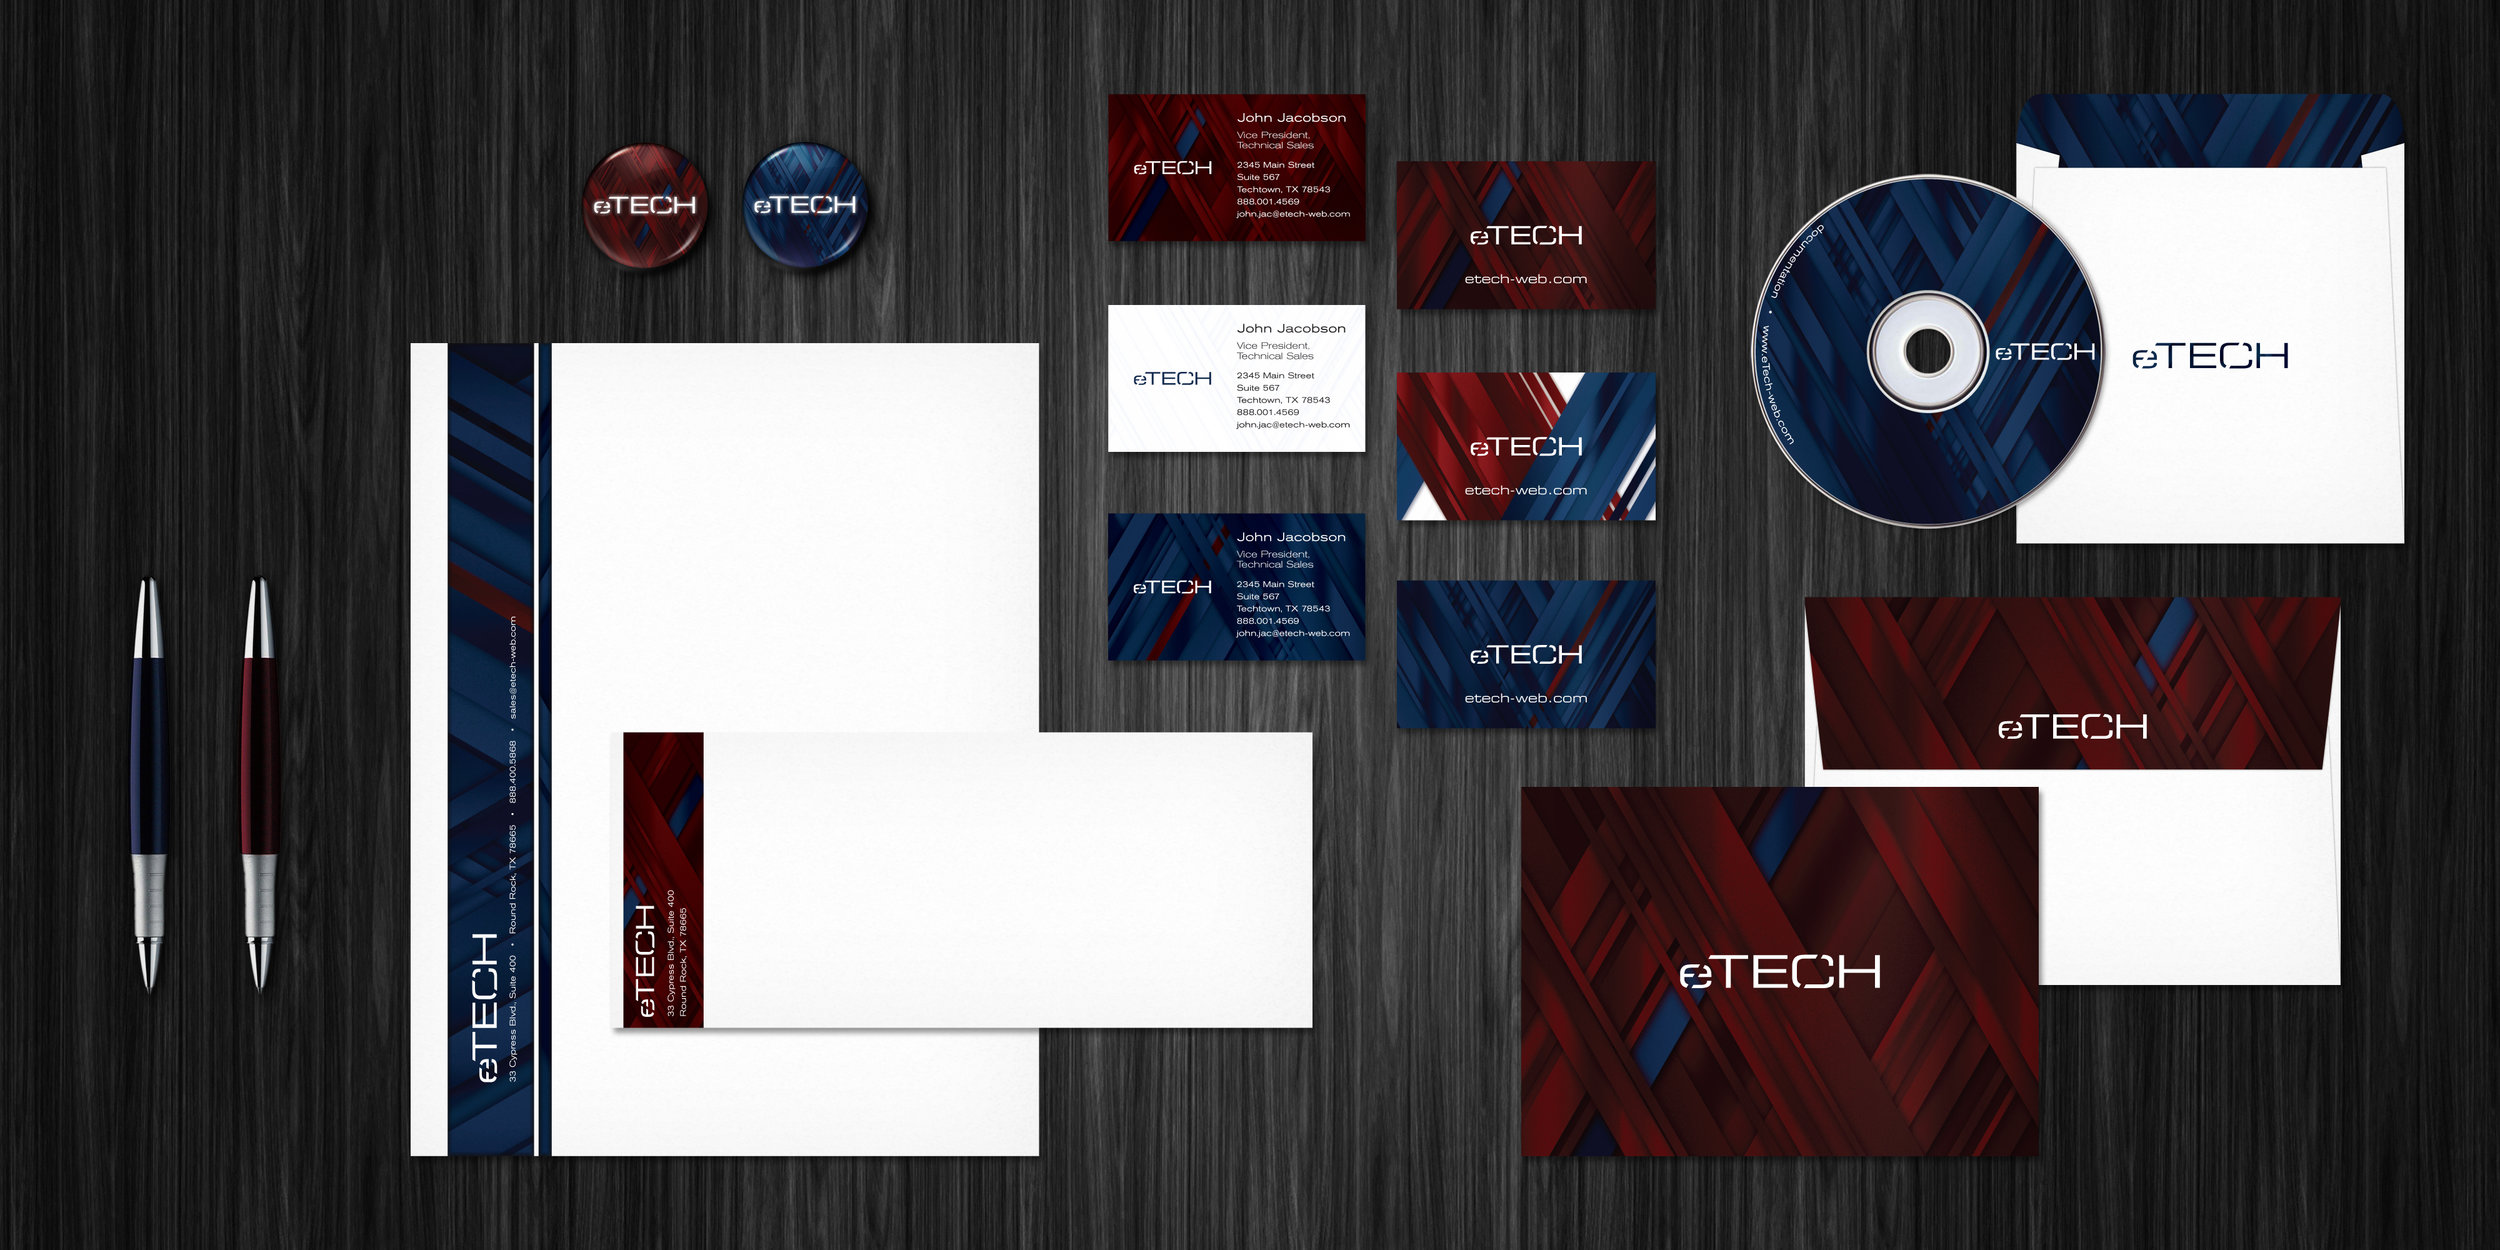 SHIP-port-eTECH-identity-01.jpg